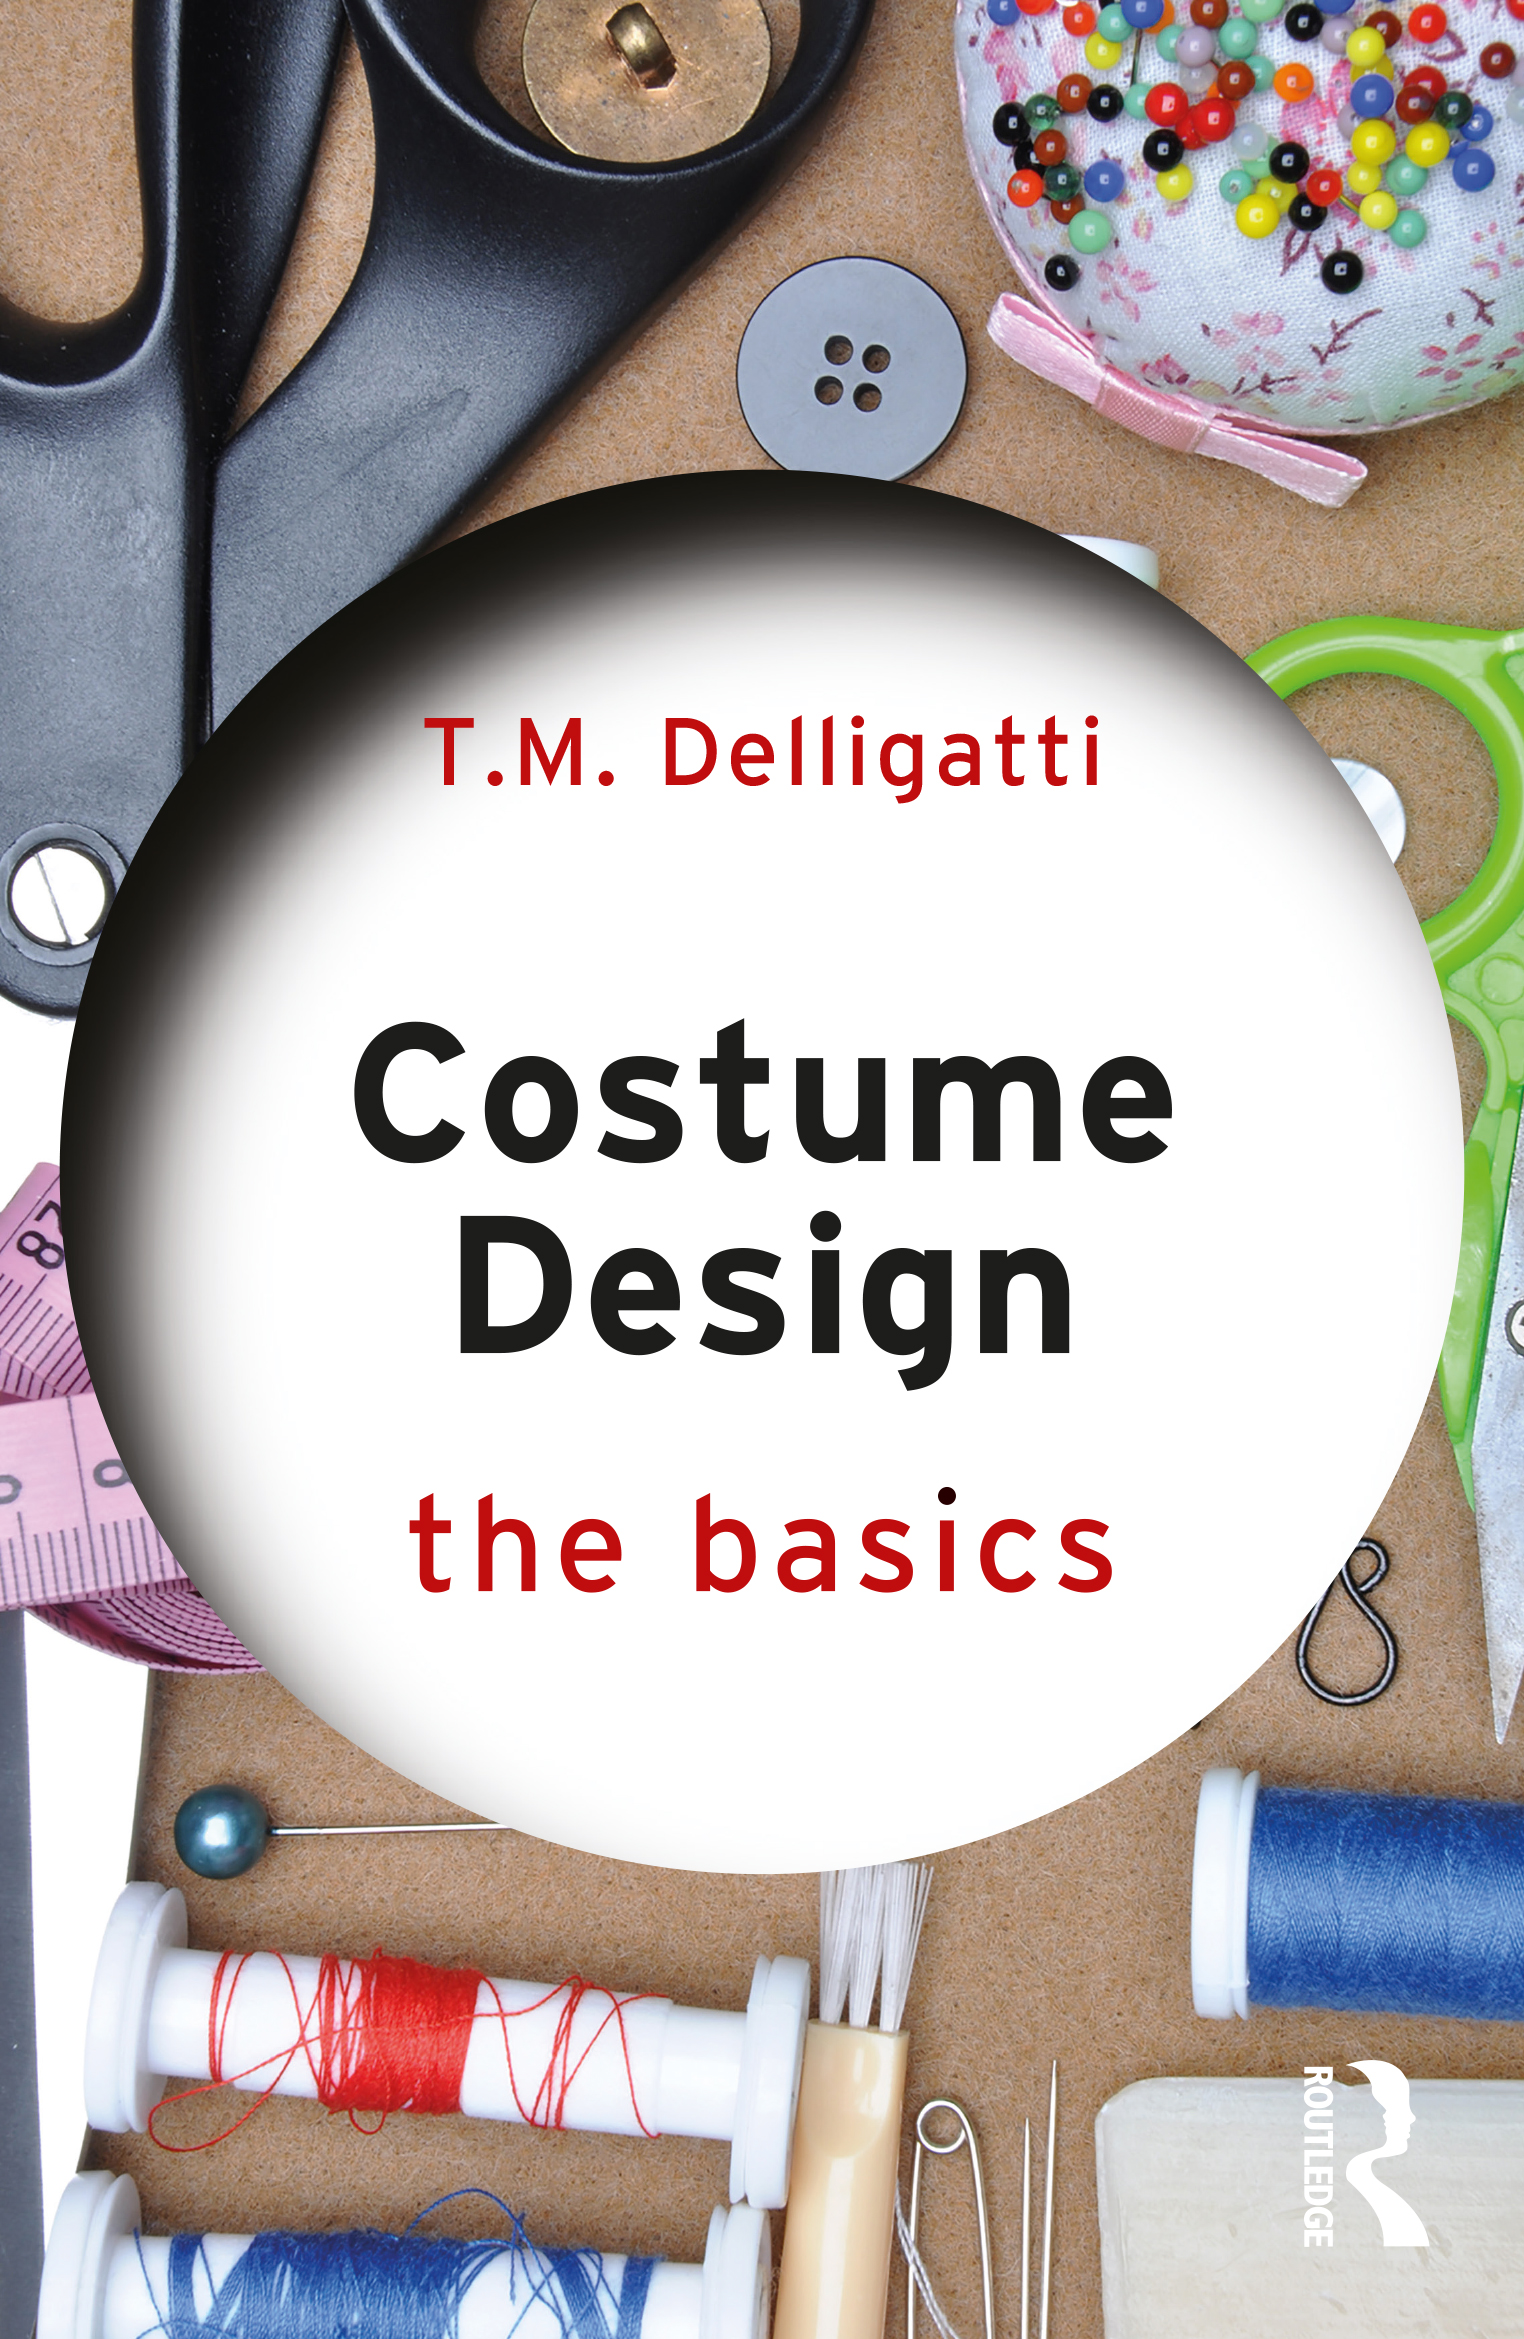 Costume Design: The Basics